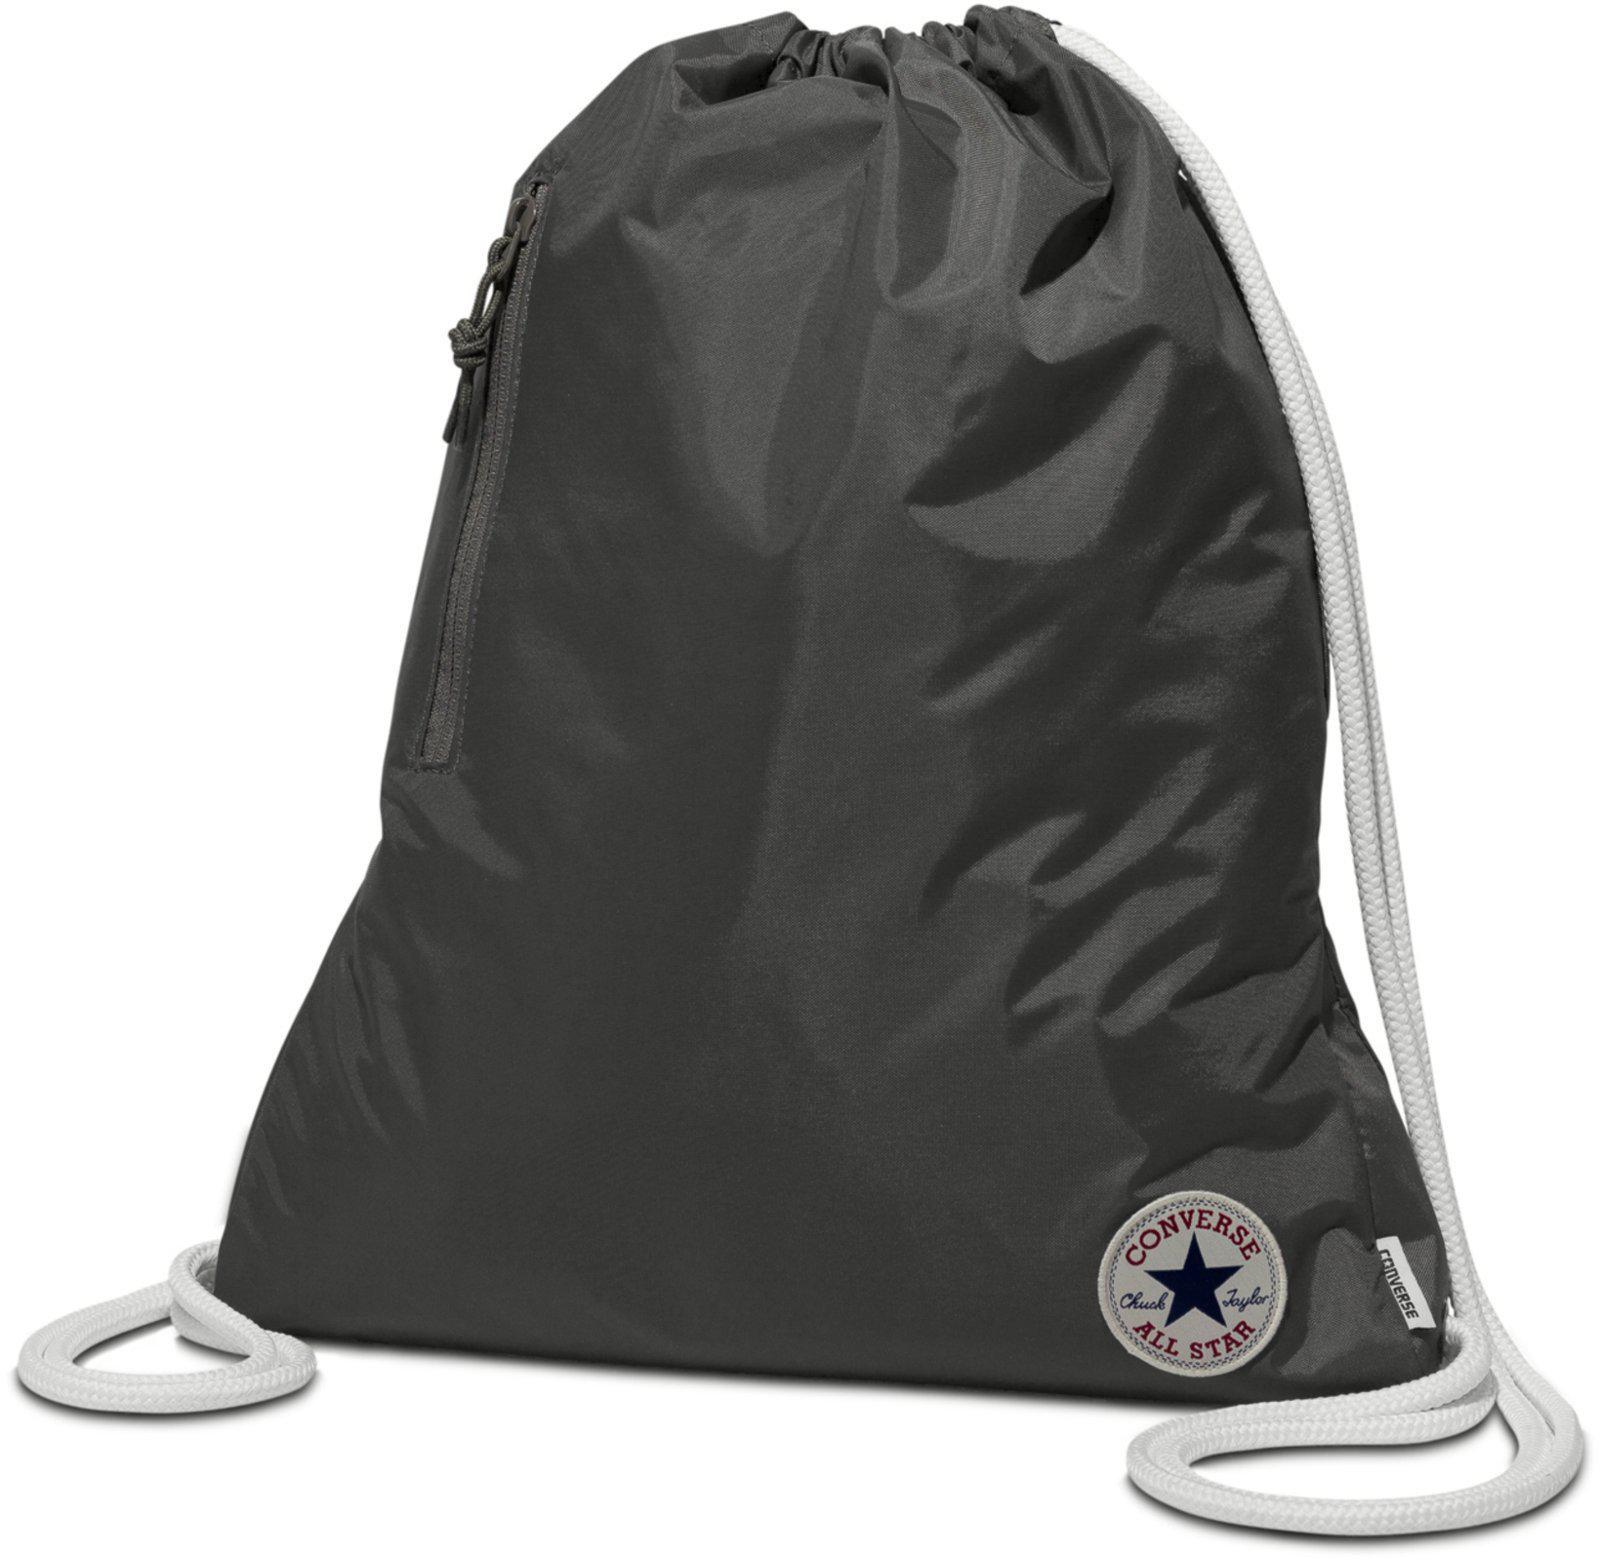 fe8d5d4f49 Converse All Star Ss17 Drawstring Gym Bag in Gray - Lyst